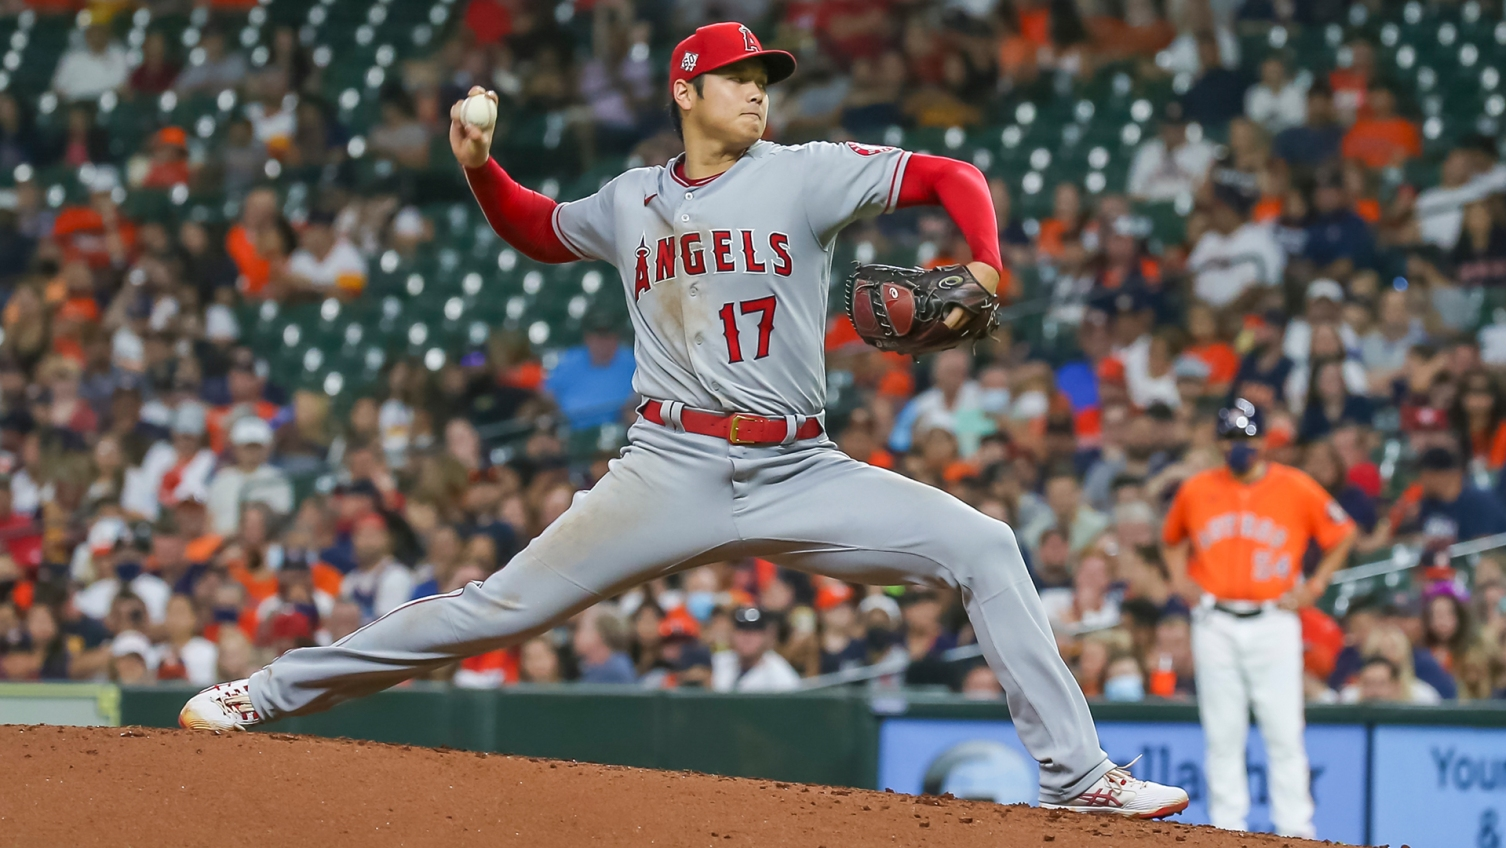 Shohei Ohtani to pitch Sunday for Angels